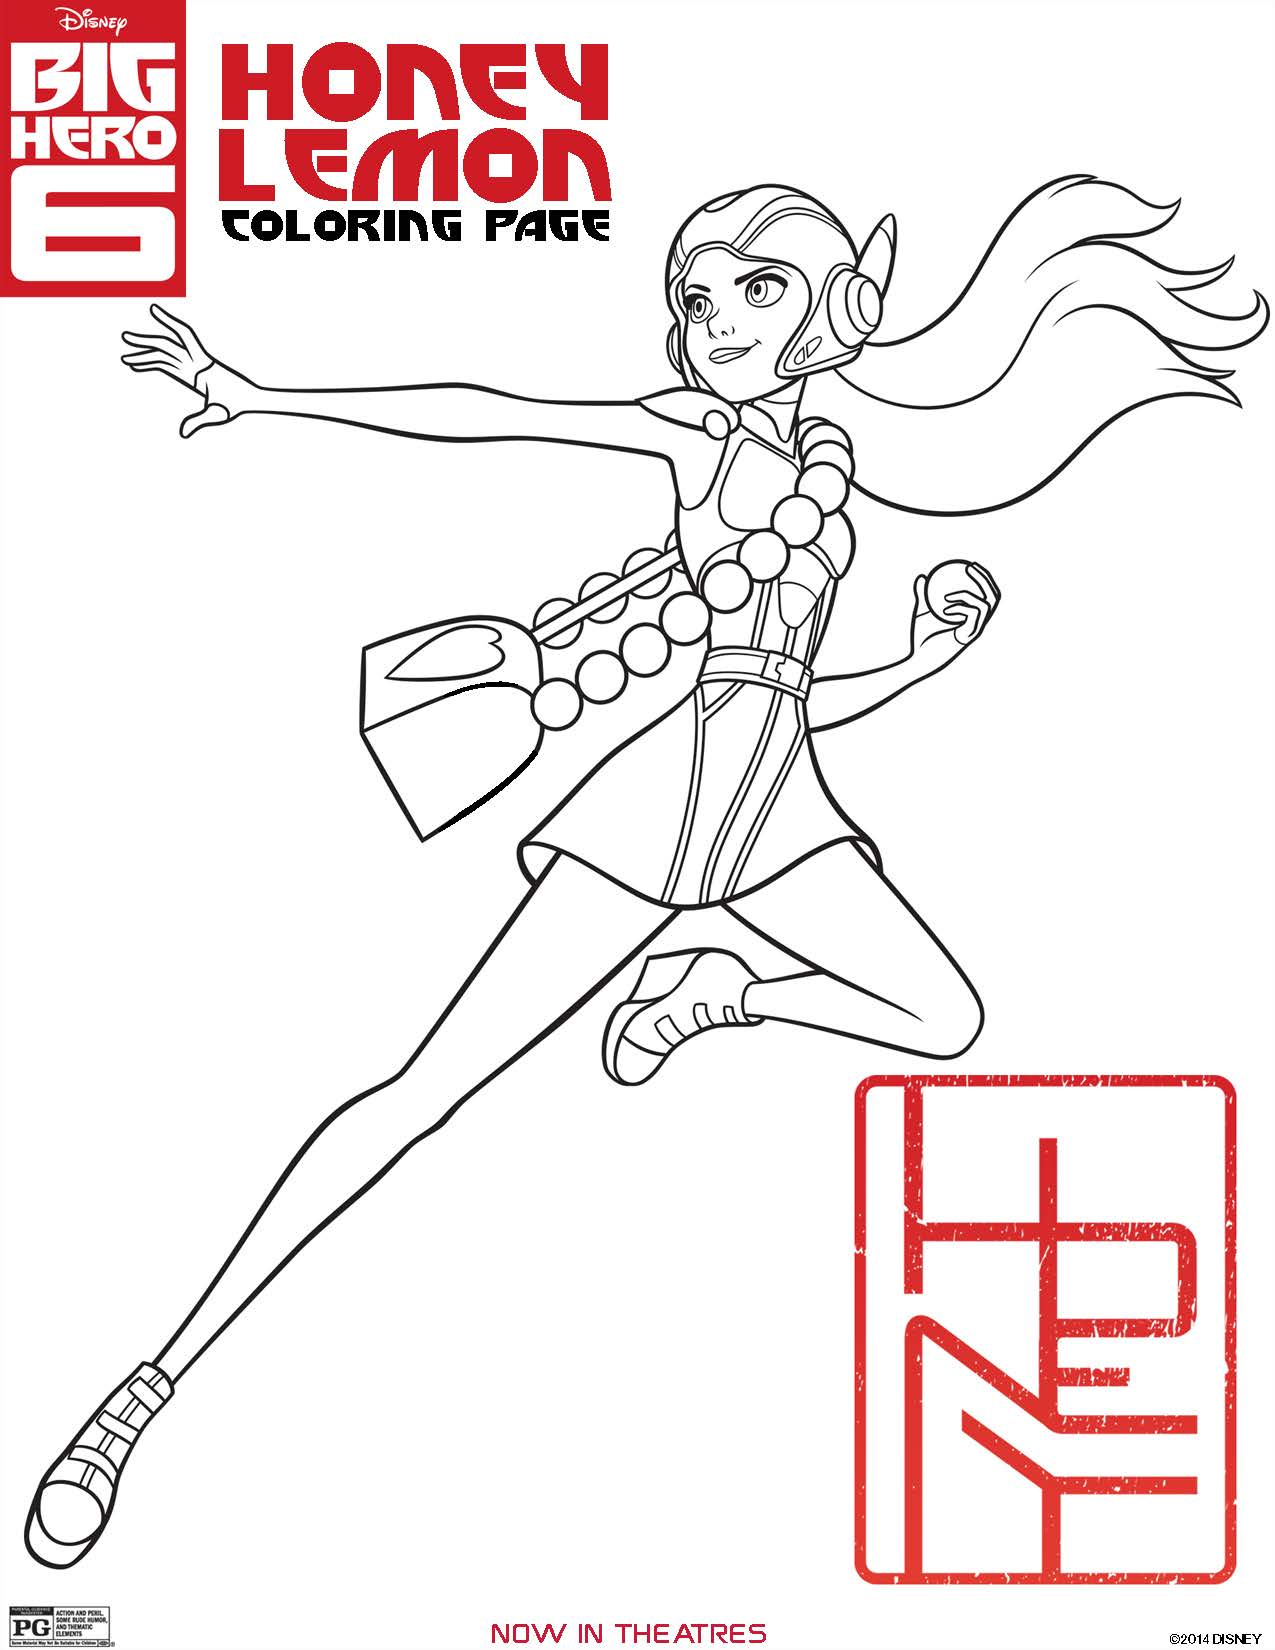 Coloring Pages For The Way I Feel